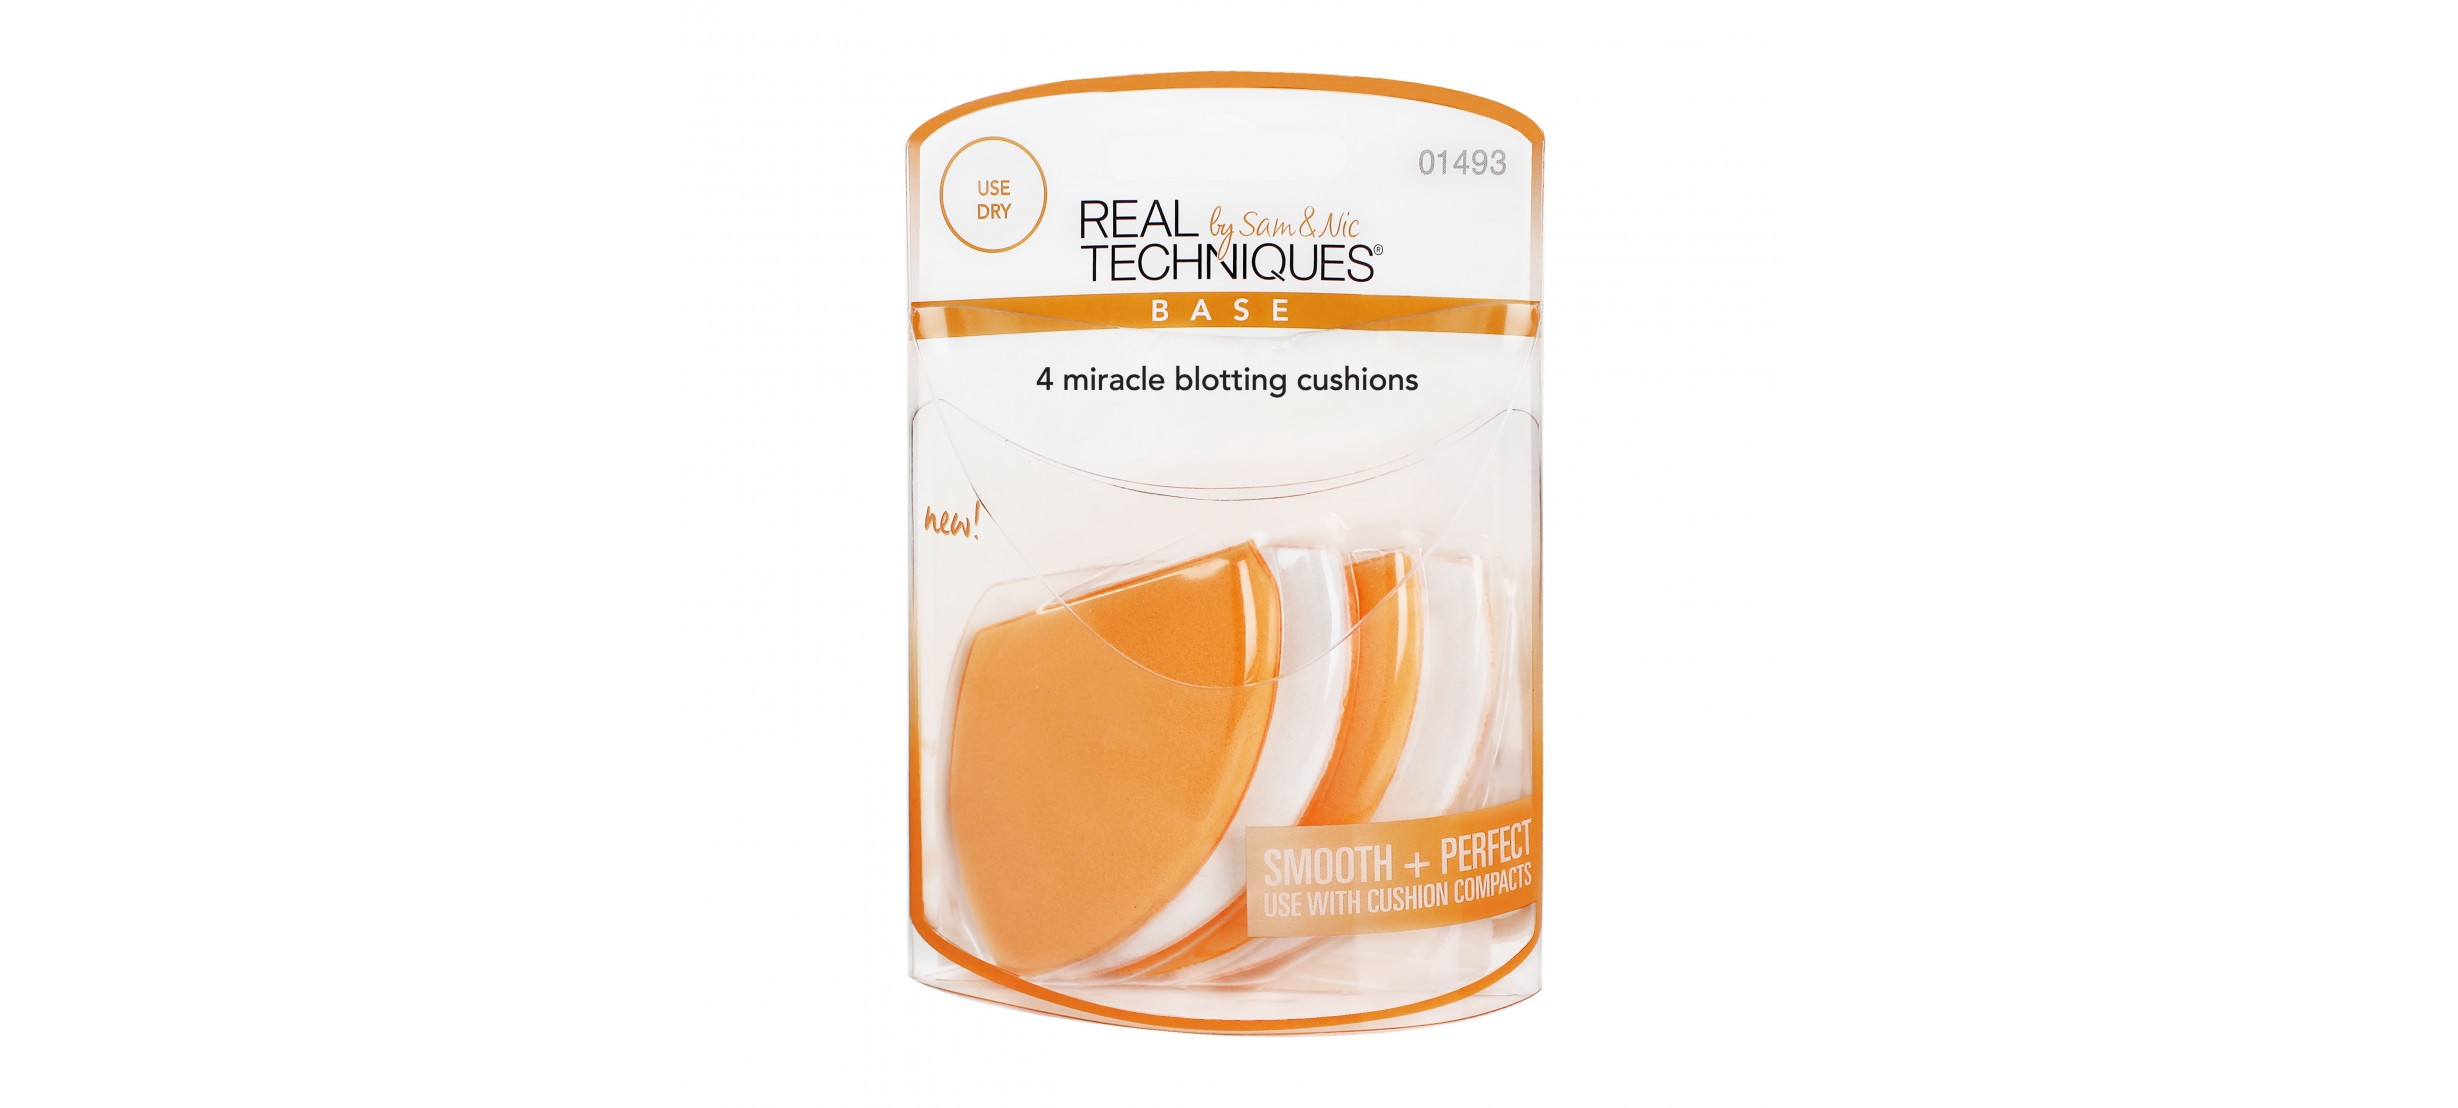 4 Miracle Blotting Cushions